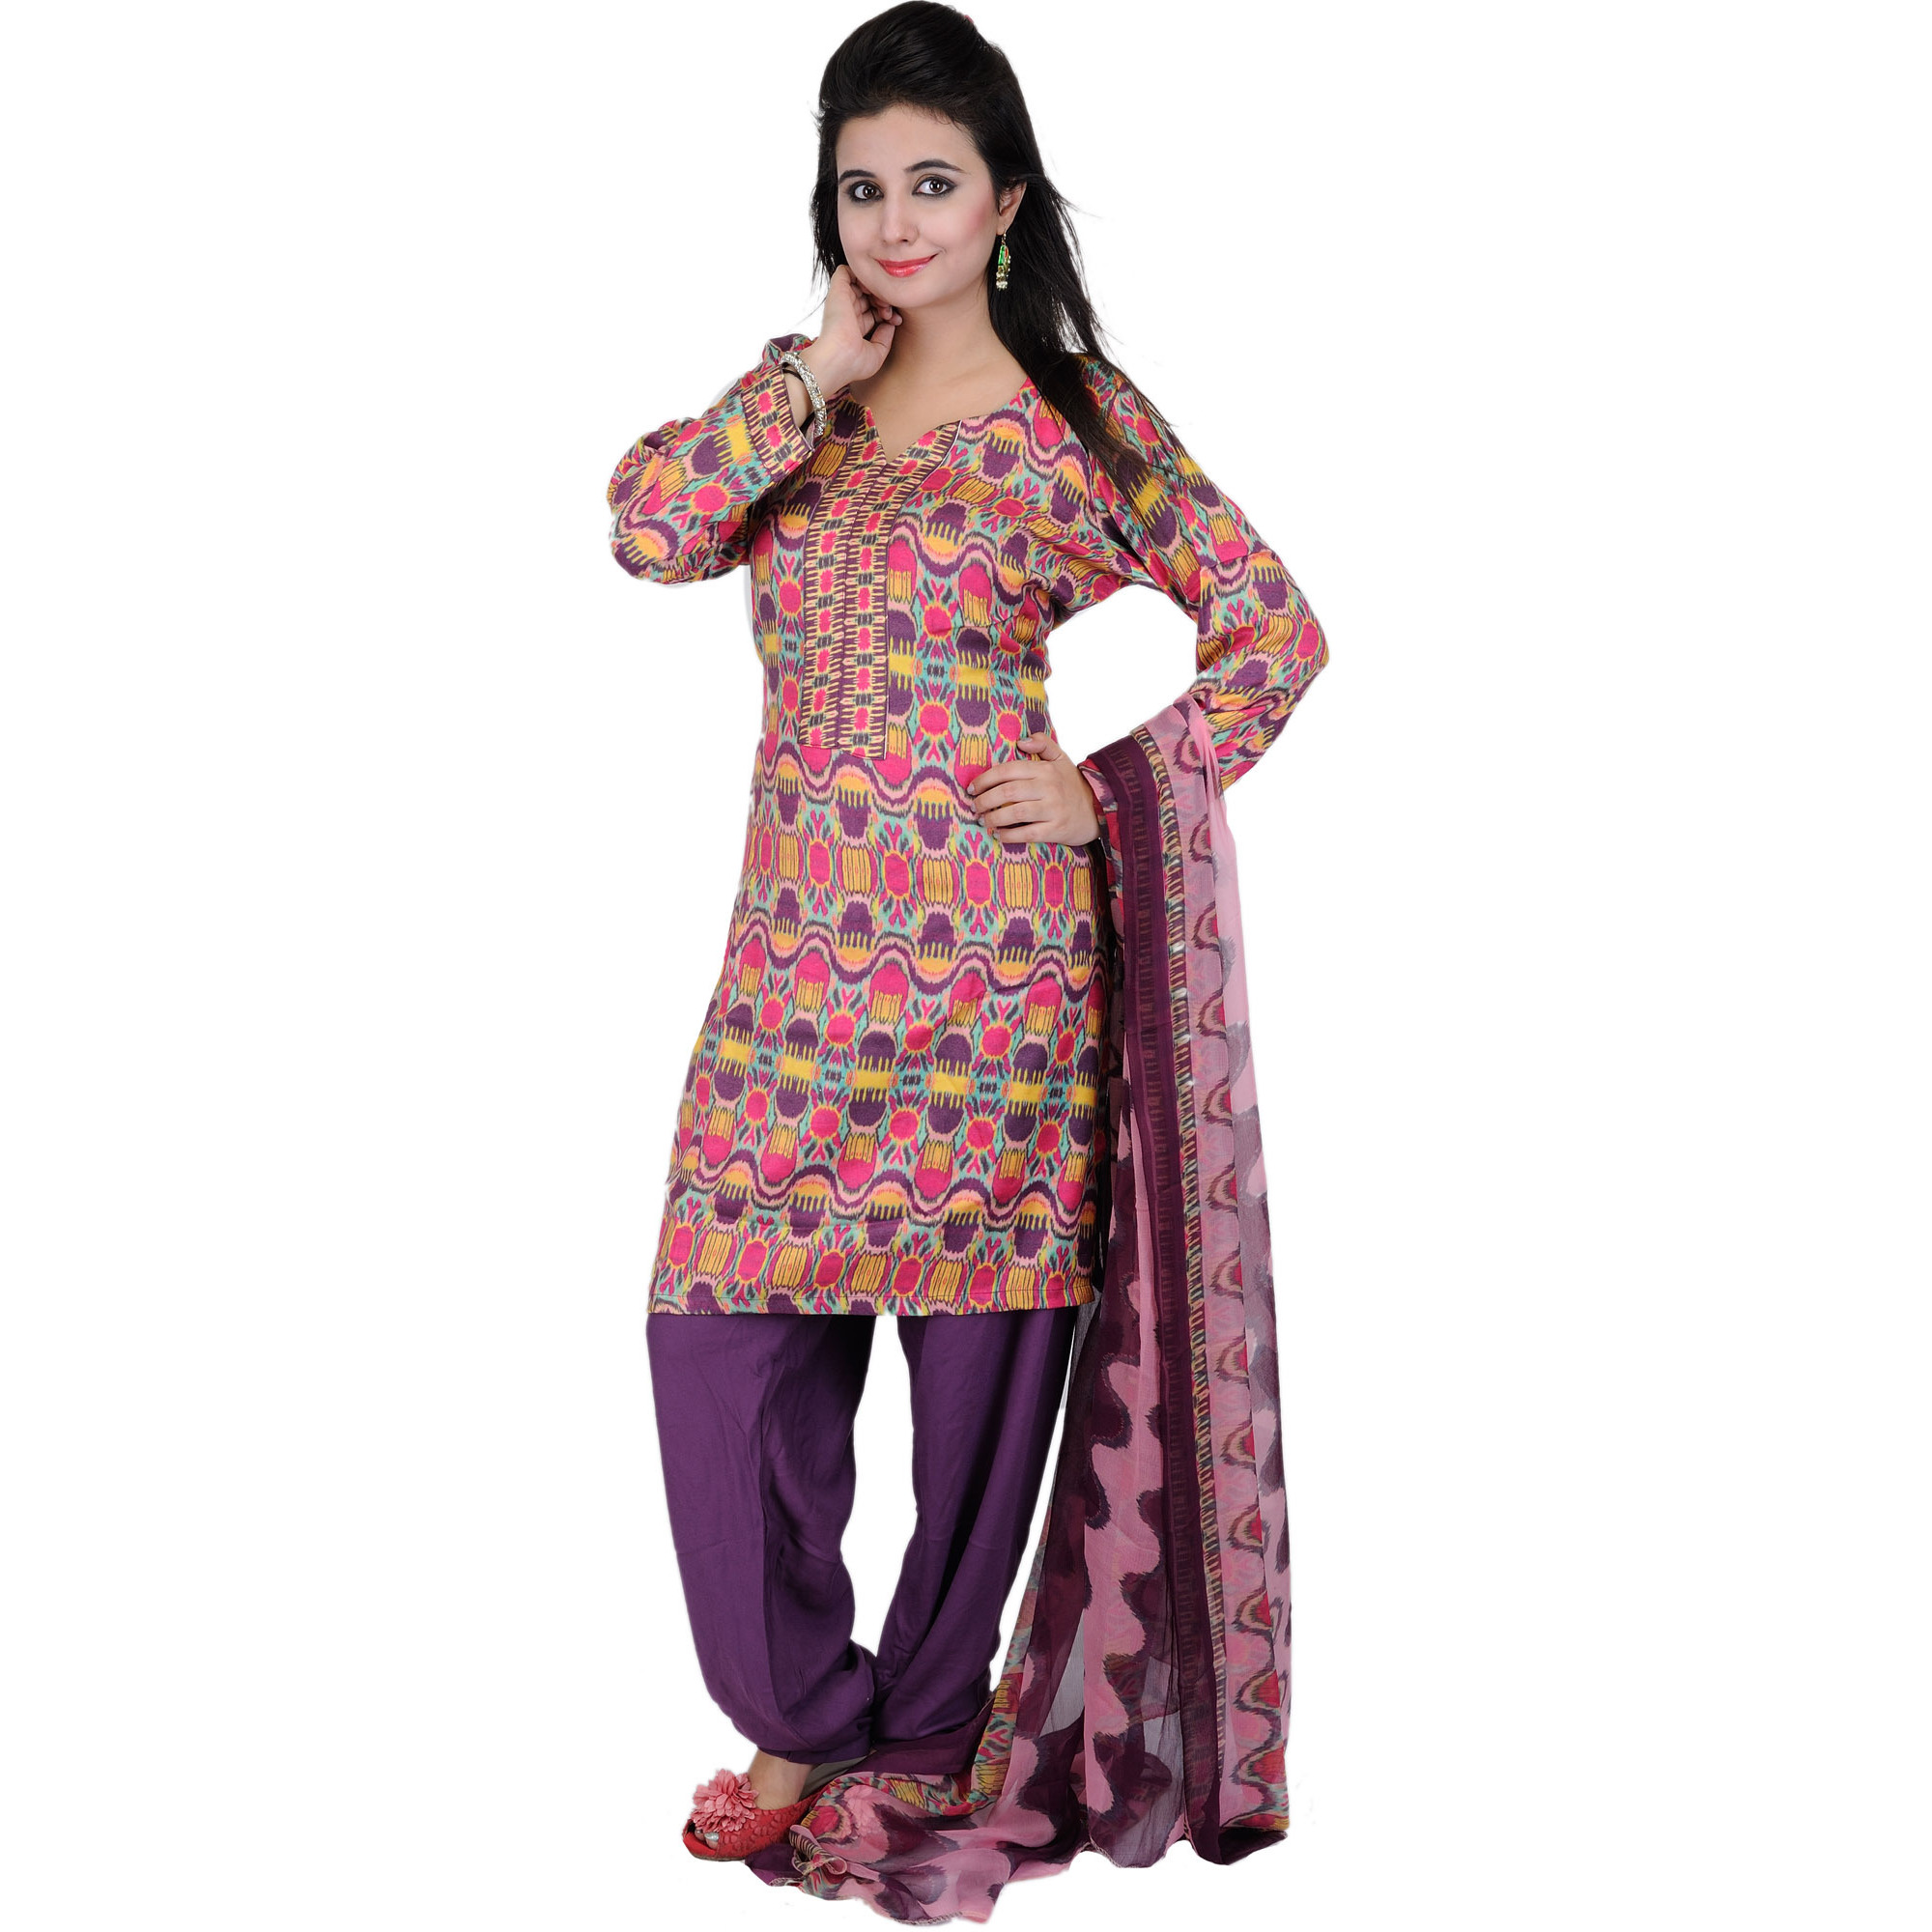 Multi-Color Choodidaar Kameez Suit with Digital Ikat Print